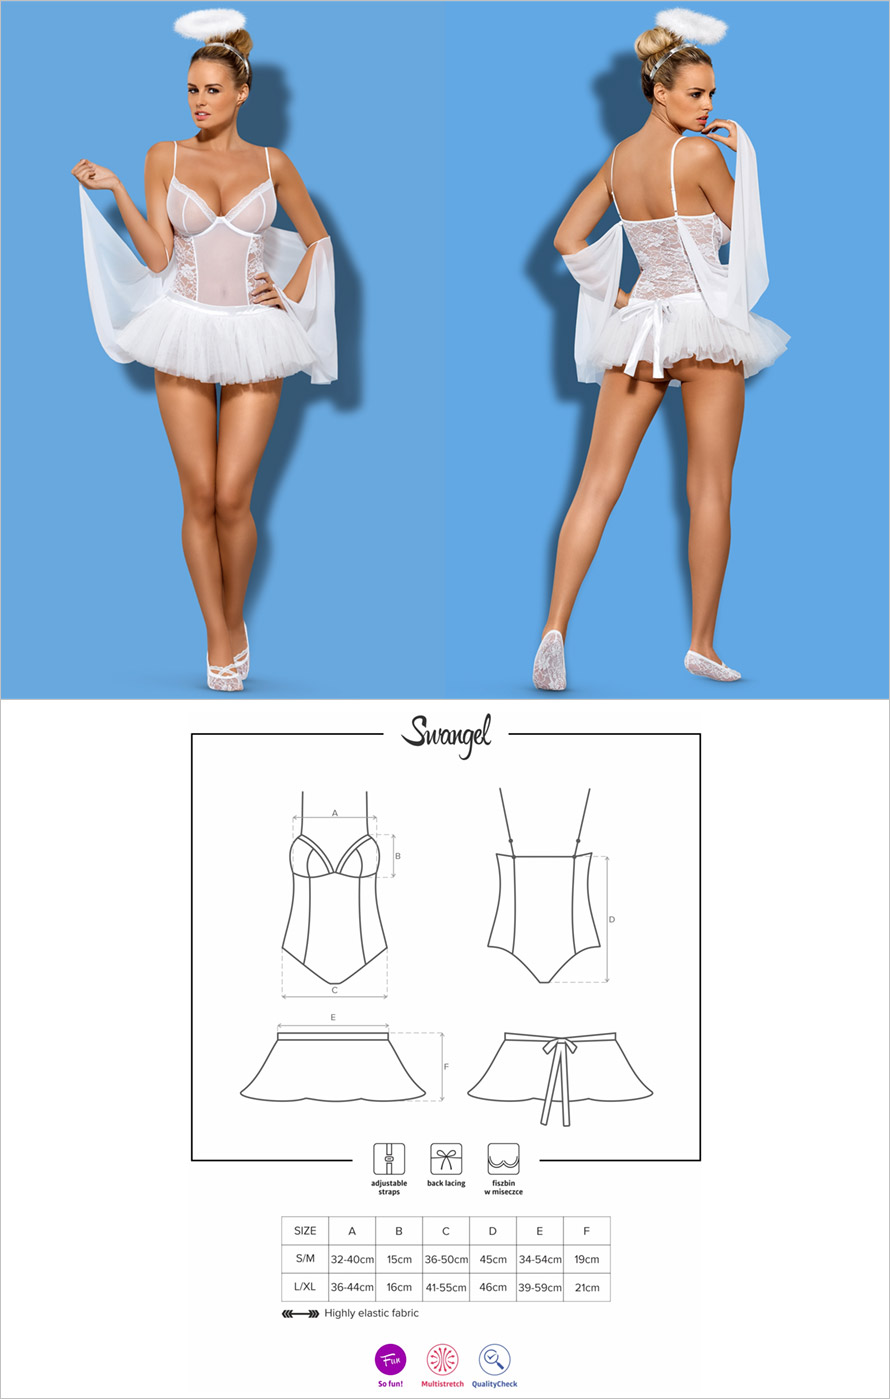 Obsessive Swangel angel outfit - White (L/XL)